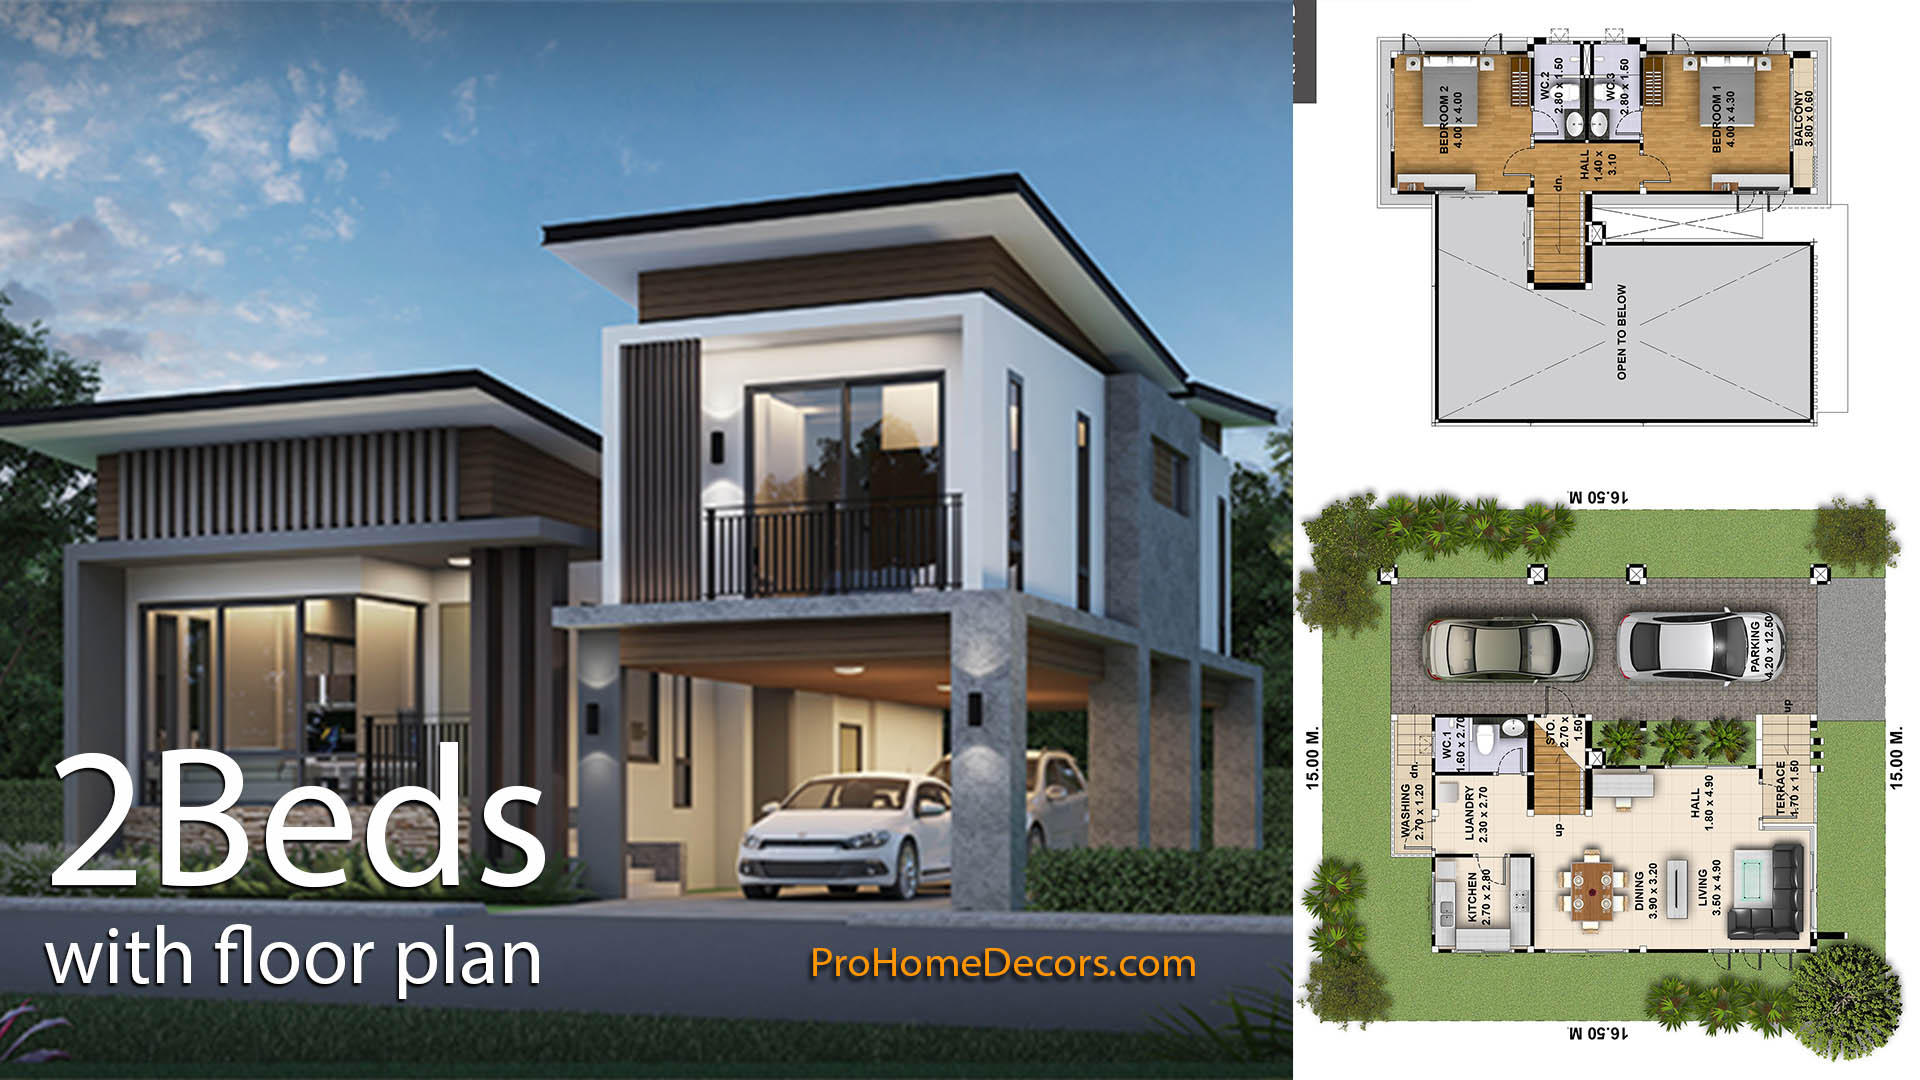 2 Bedrooms House Plot 15×16.5 Meter